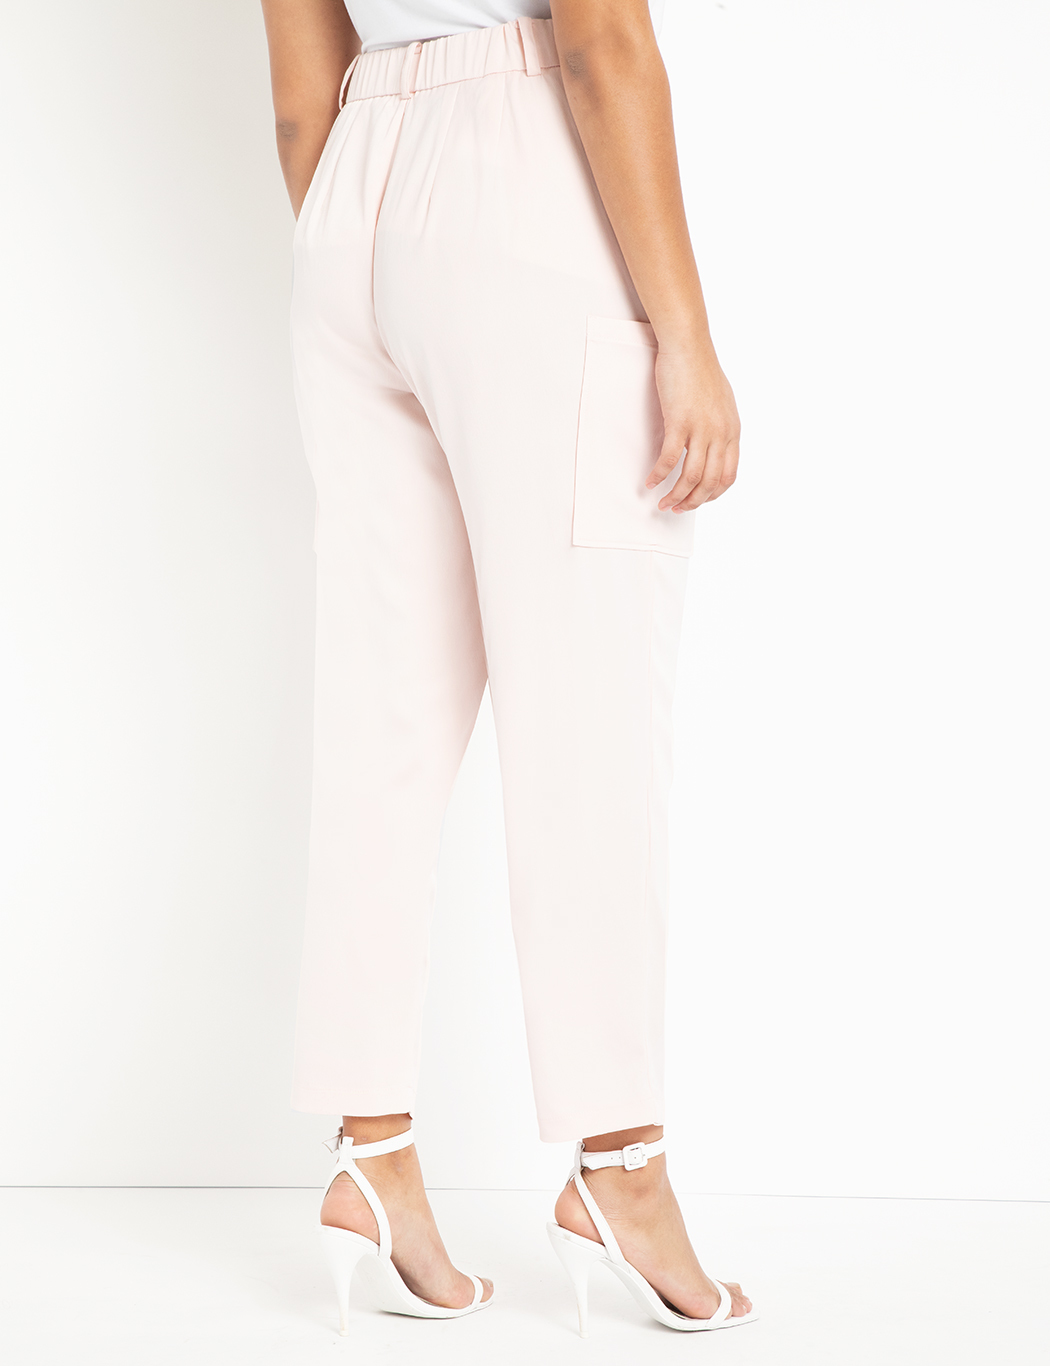 Satin Pant with Patch Pockets